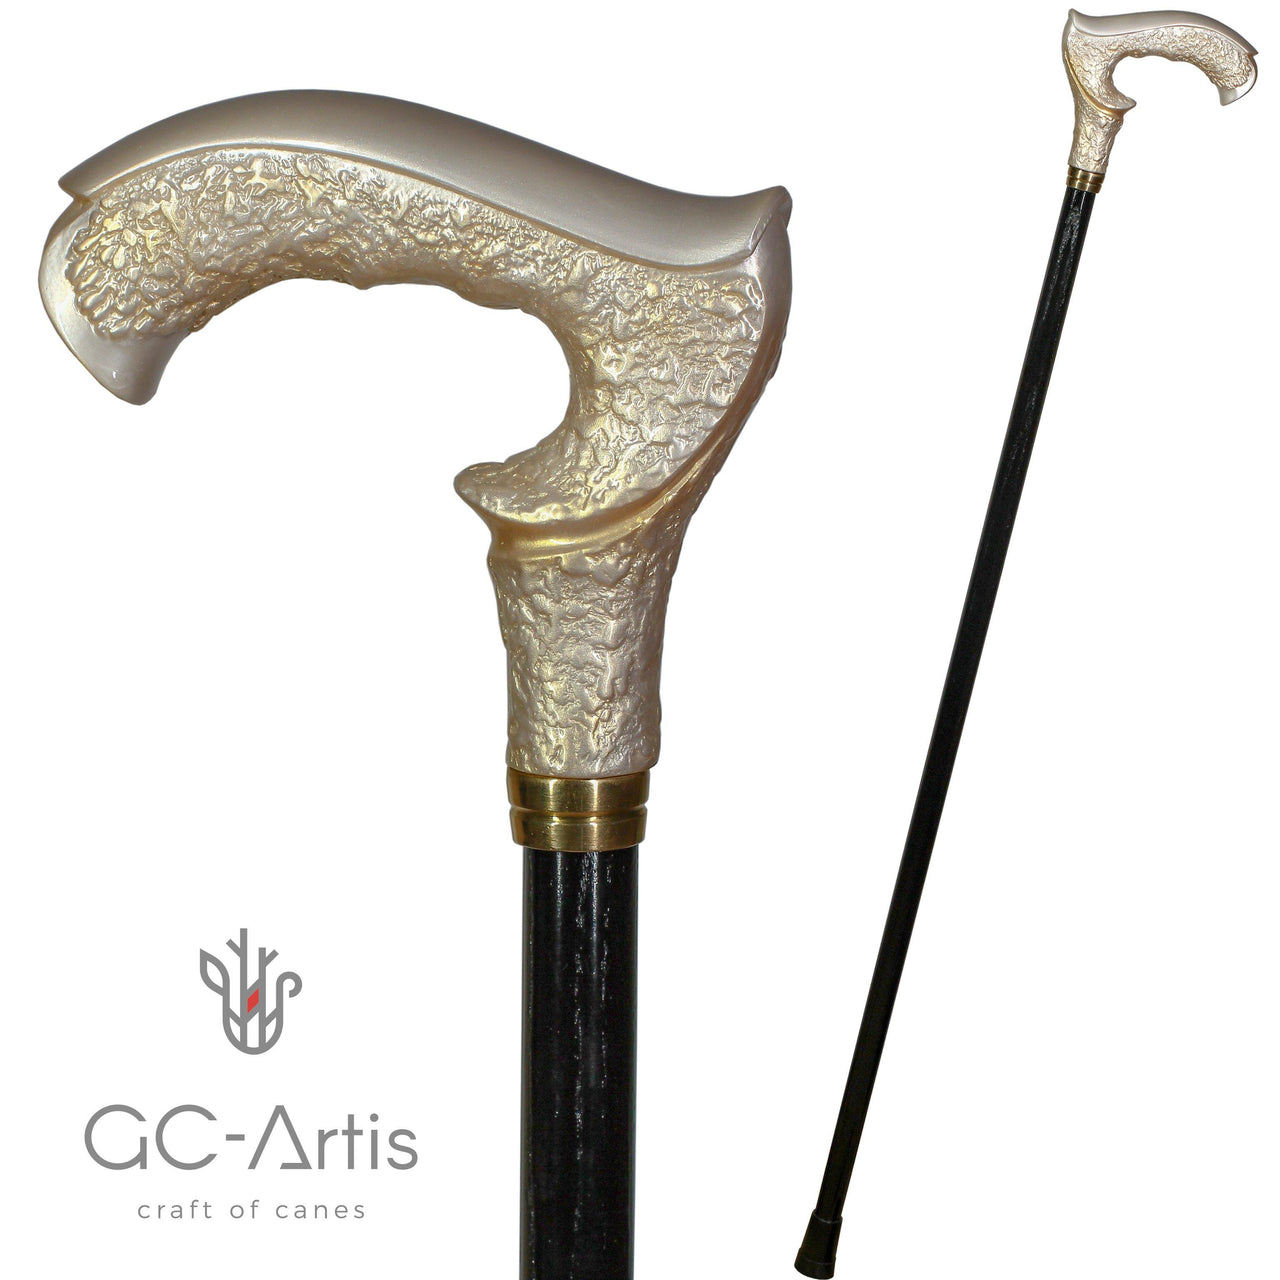 GRACE Pearl Walking Stick Cane - GC-Artis Walking Sticks Canes